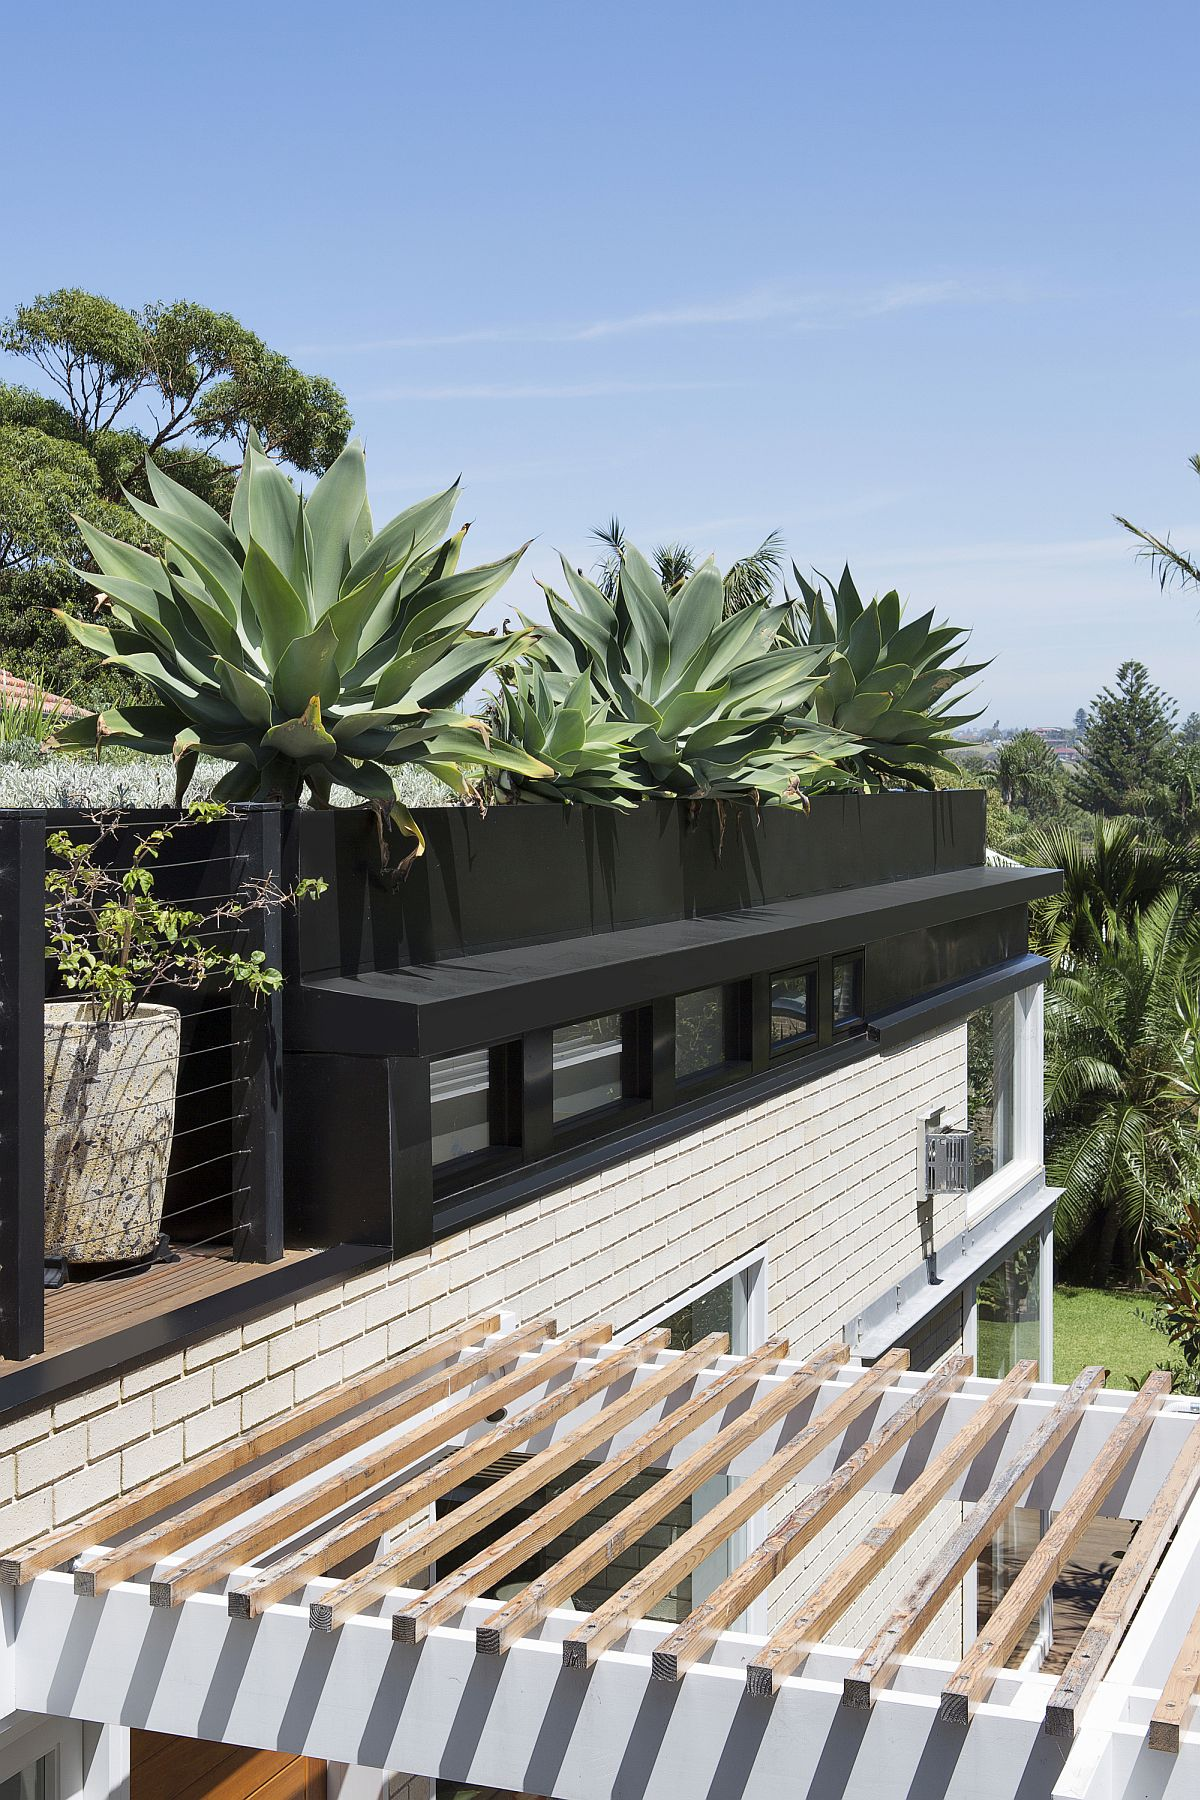 Look-at-the-unique-green-roof-of-the-Sydney-home